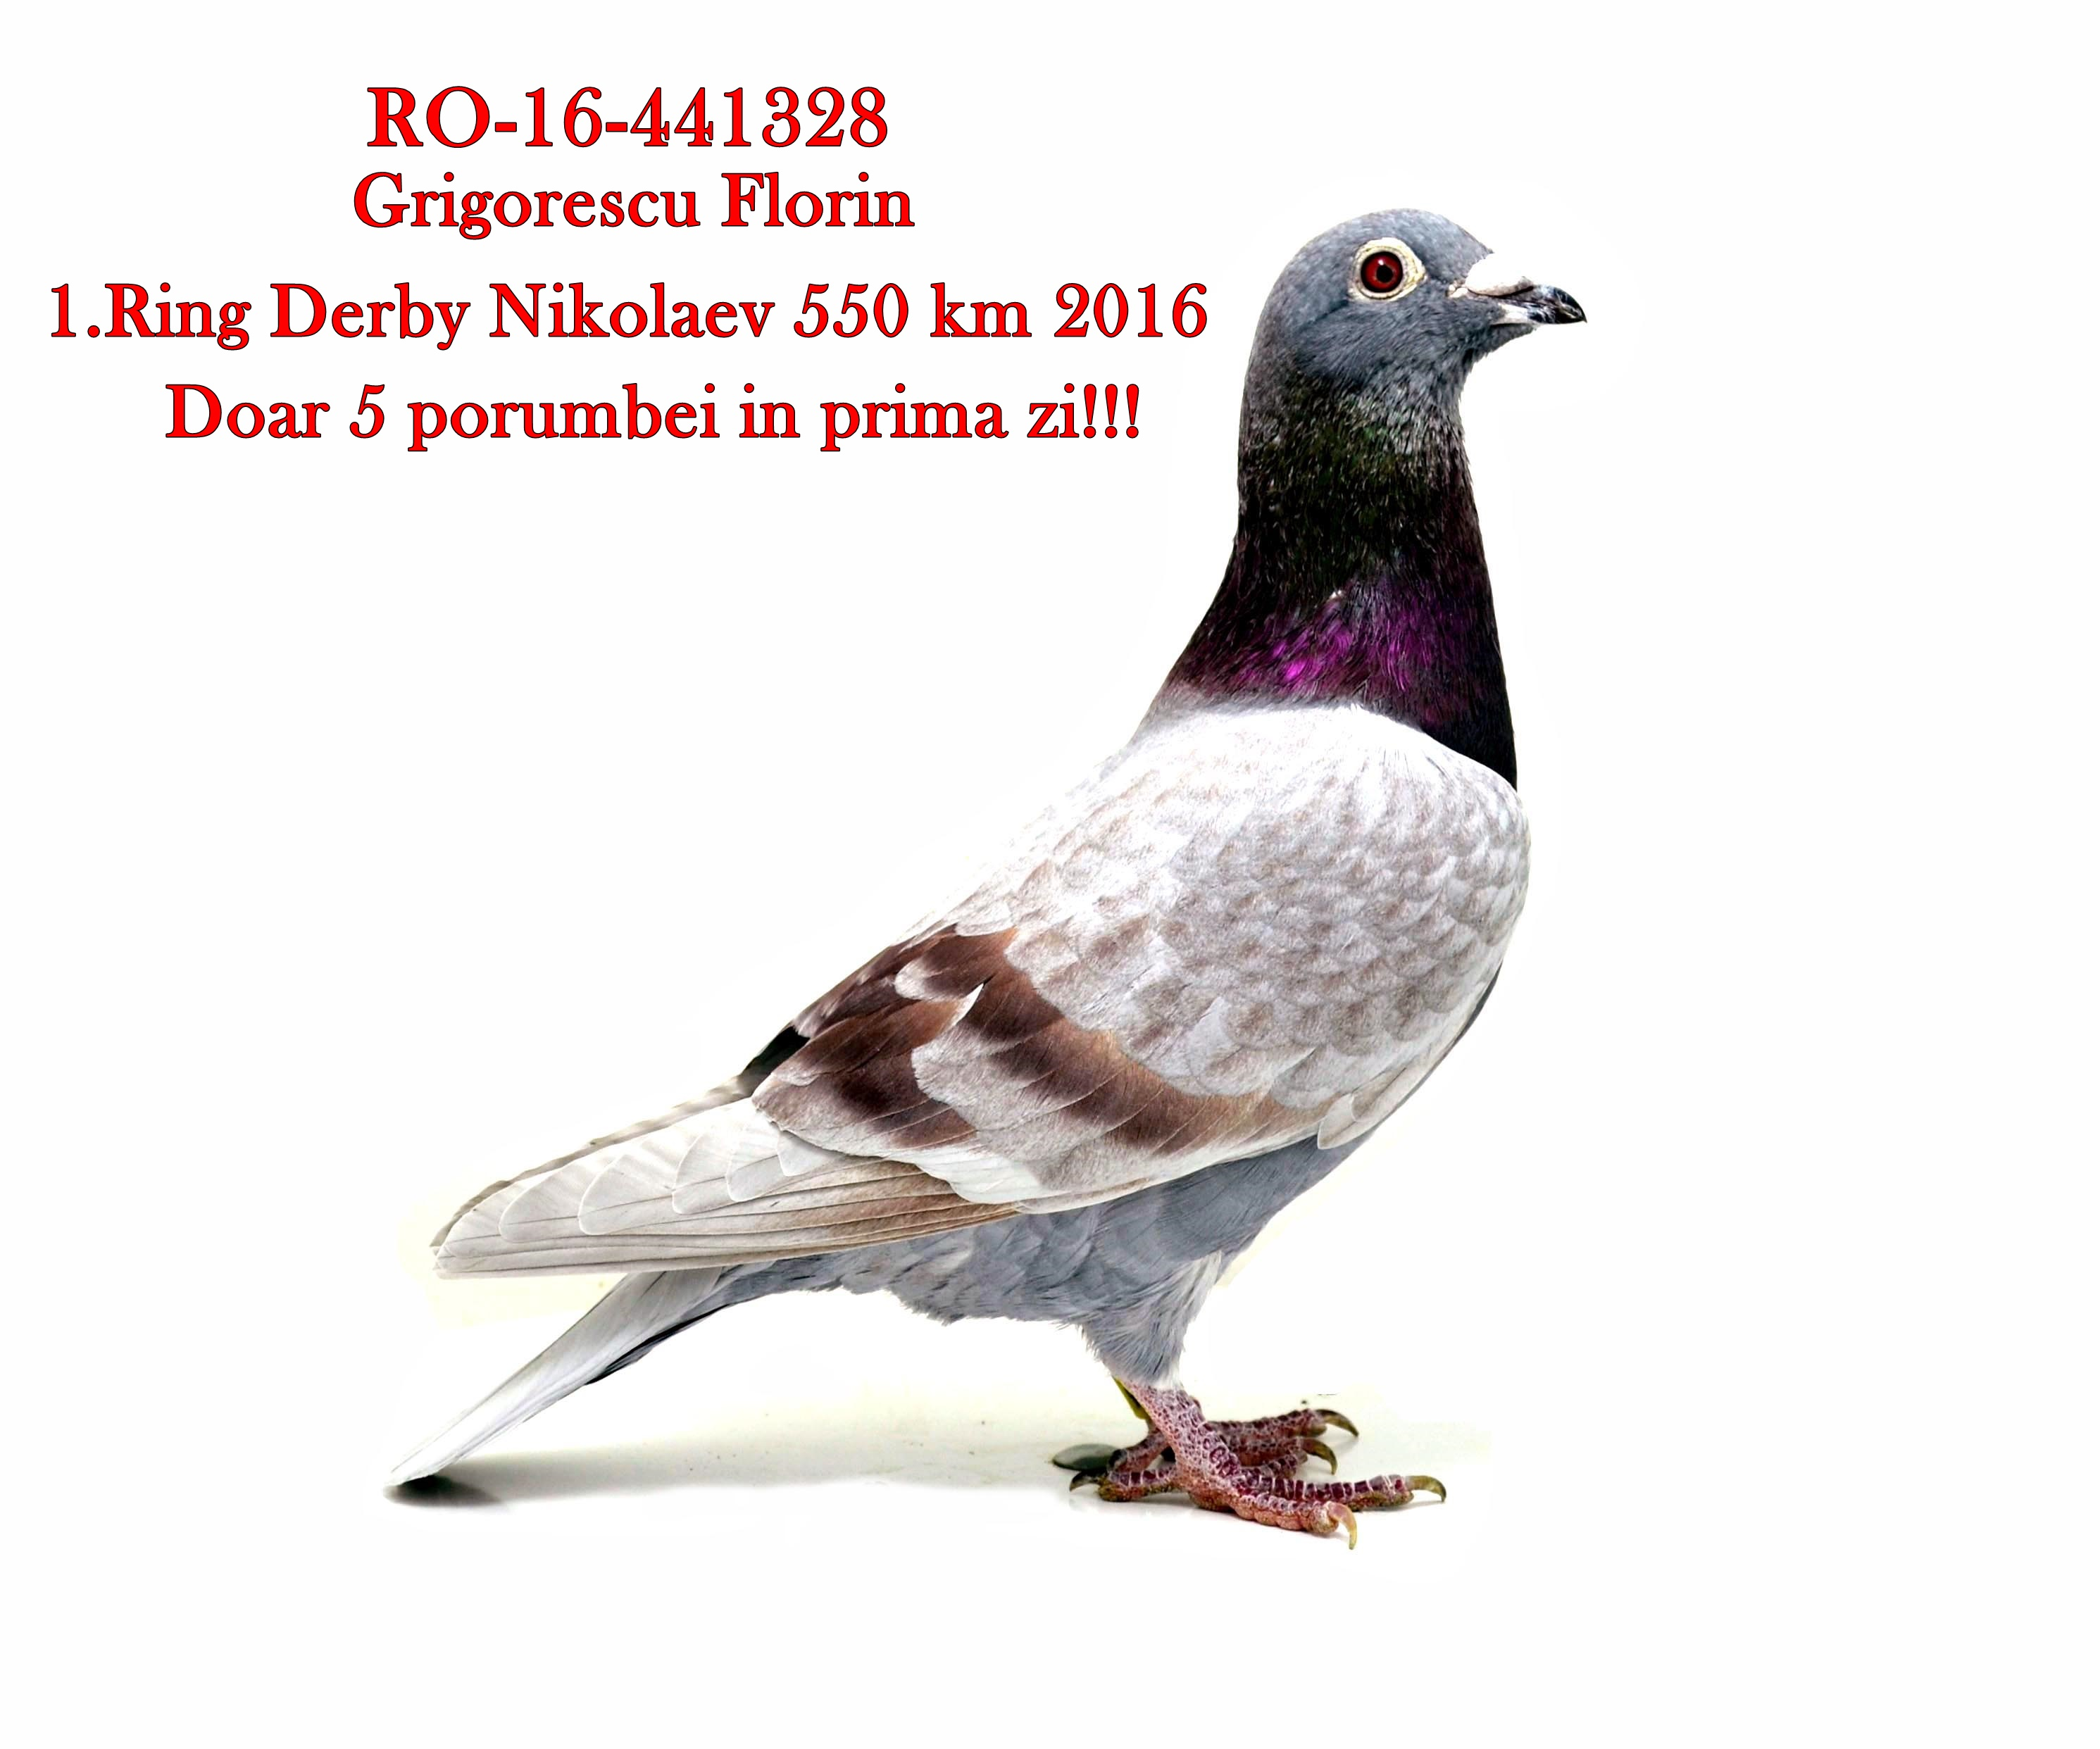 RO 18 9716 M - Son 1 prize Golden Ring Derby Nikolaev (550km)